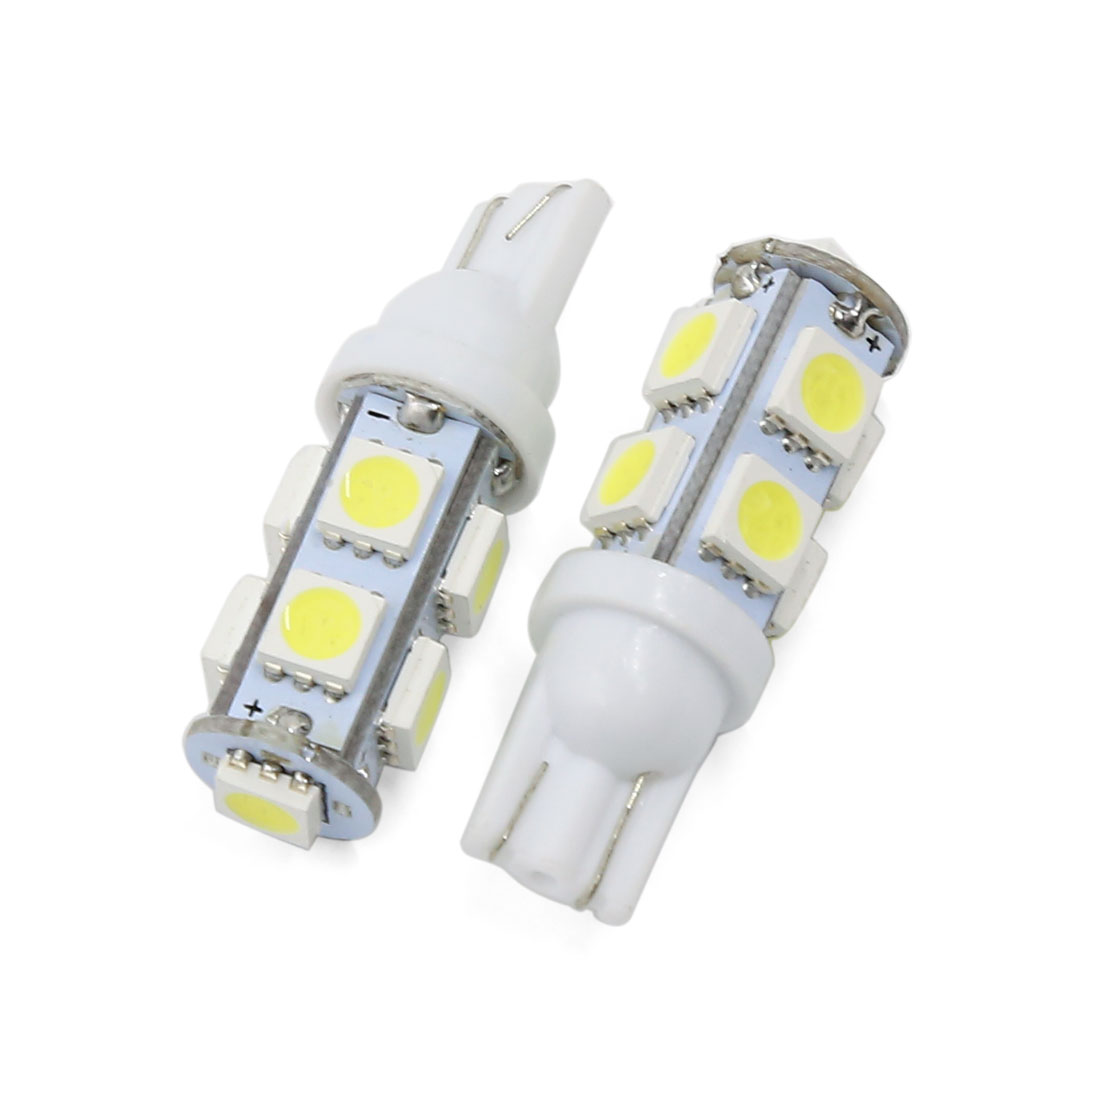 Pair T10 194 168 W5W 9 LED SMD White Car Side Wedge Light Lamp Bulb Interior